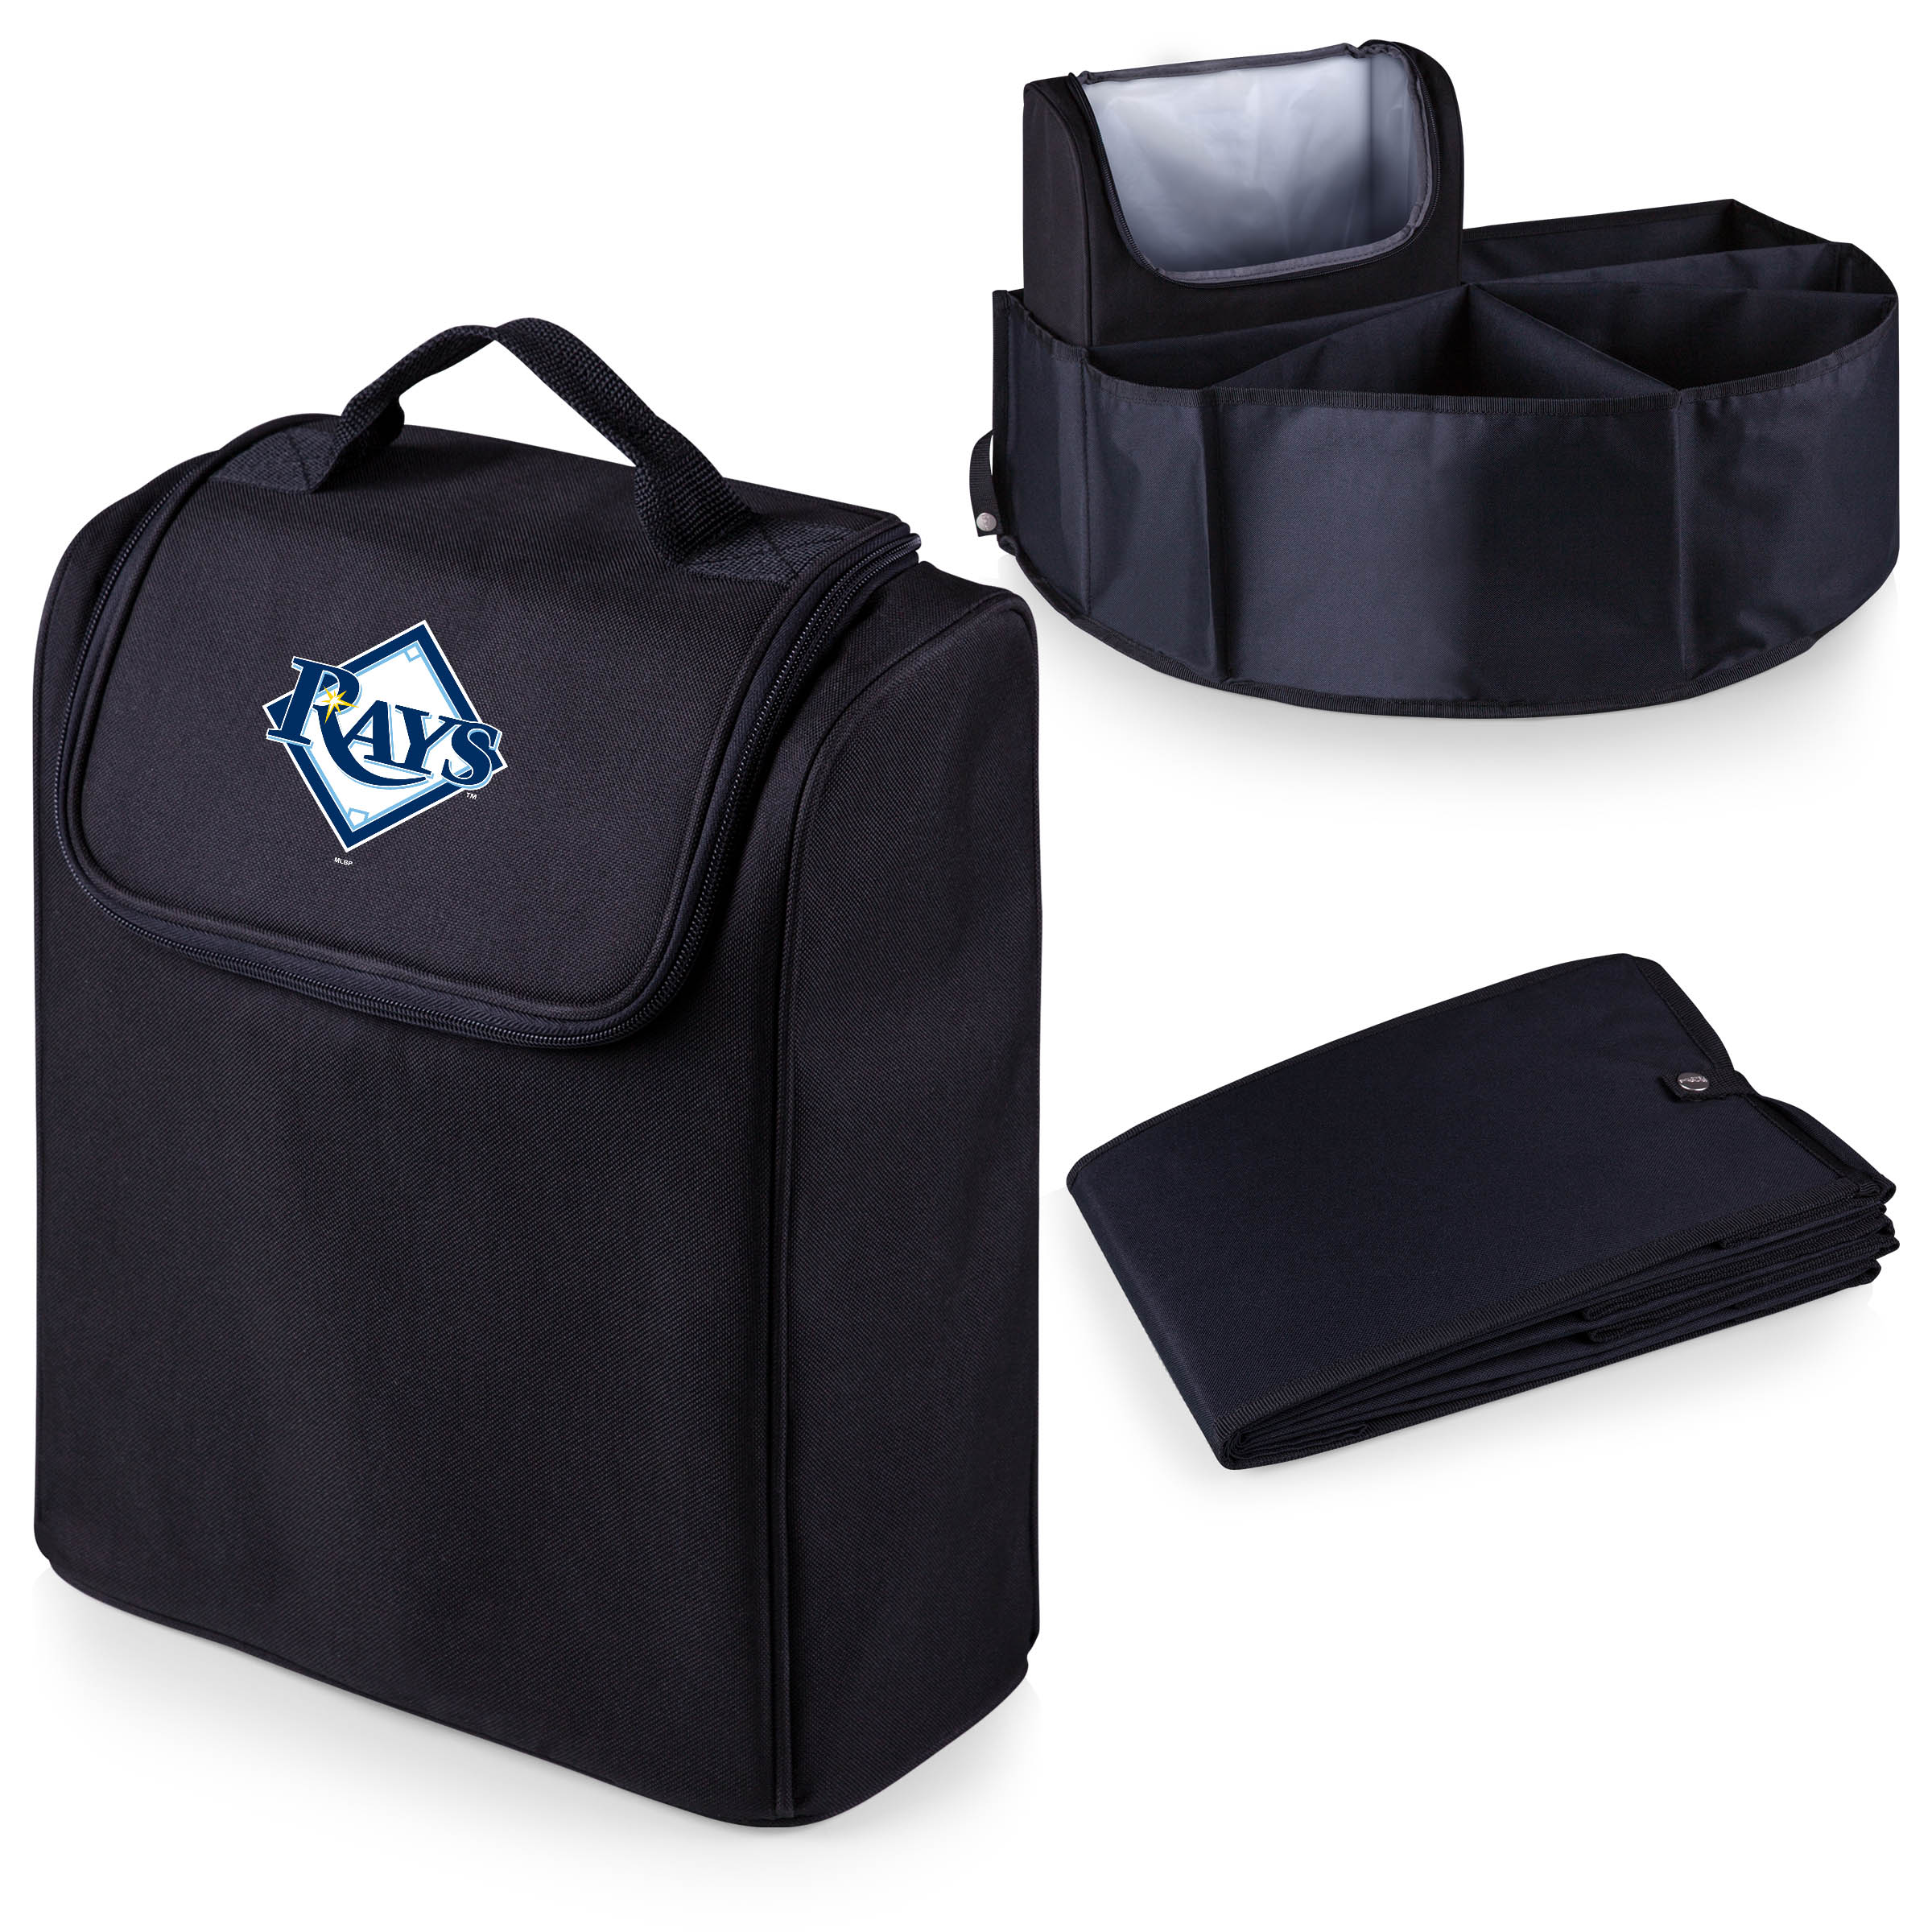 Tampa Bay Rays Trunk Boss Organizer with Cooler - Black - No Size